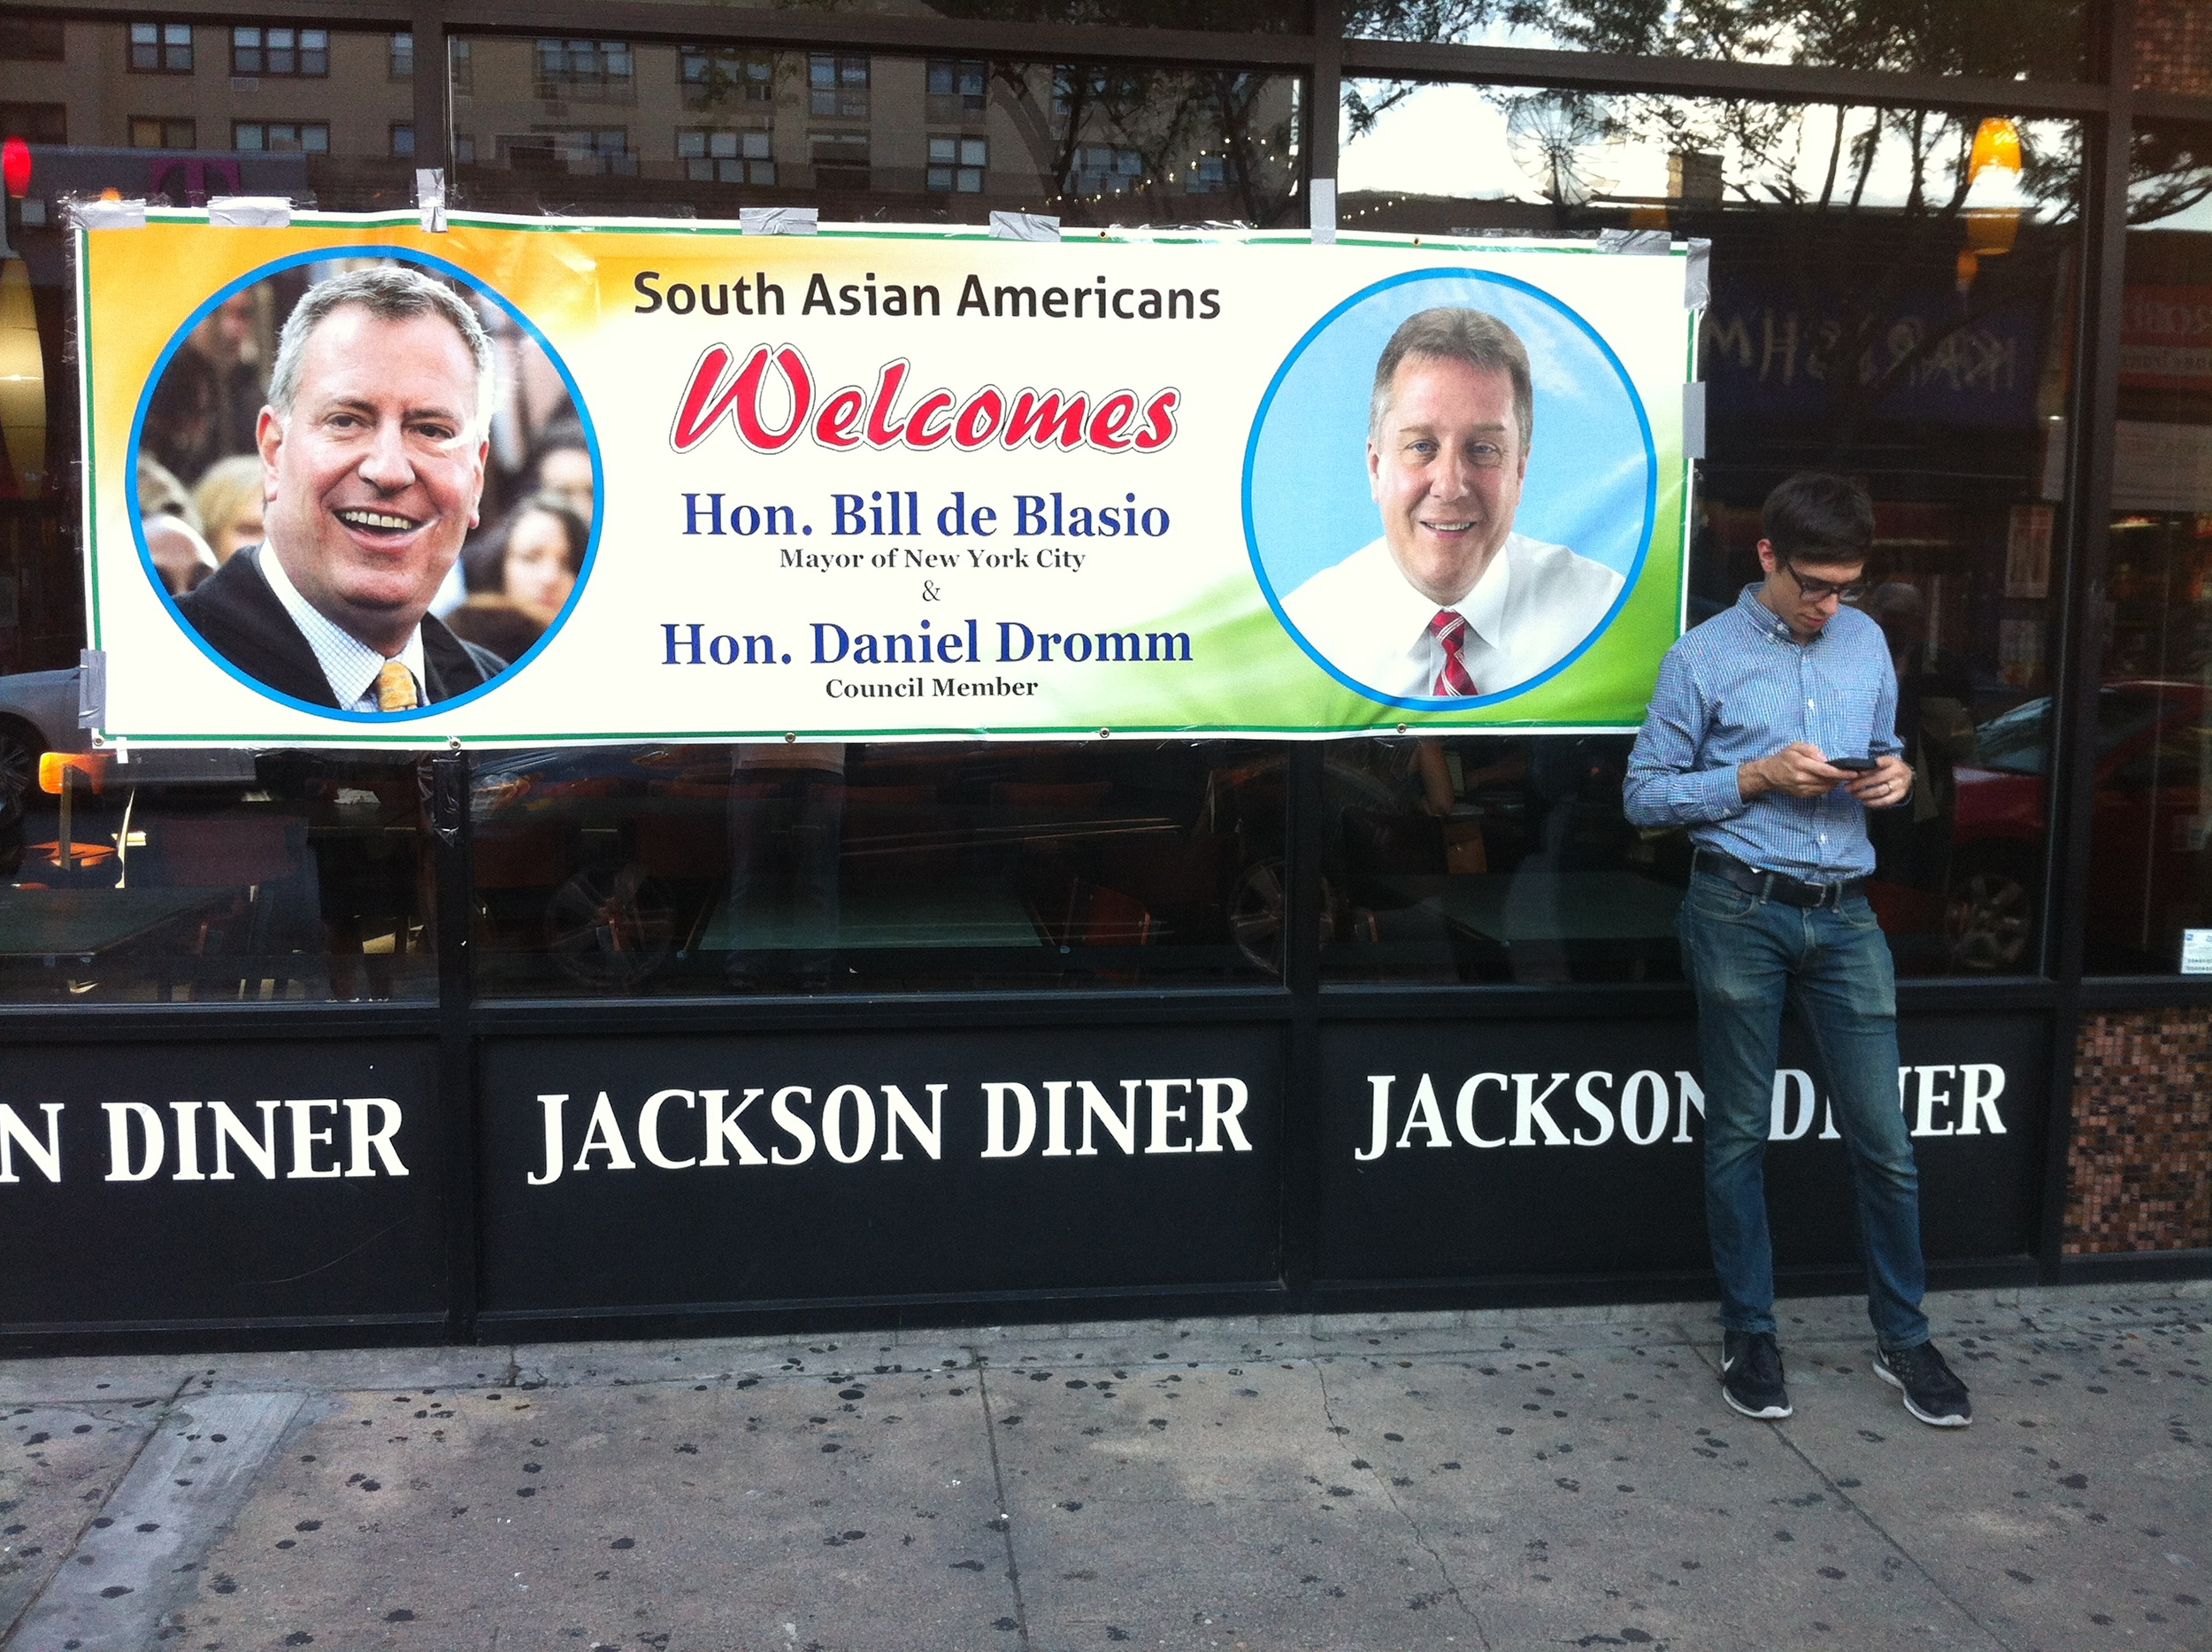 The giant welcoming banner outside the  Jackson Diner , location of a small money donation fundraiser to benefit the  committee to reëlect  Mayor  Bill de Blasio  (D-New York City). The fundraiser was hosted by New York City Councilmember  Daniel Dromm  (D-Jackson Heights). Source : Louis Flores/Progress Queens